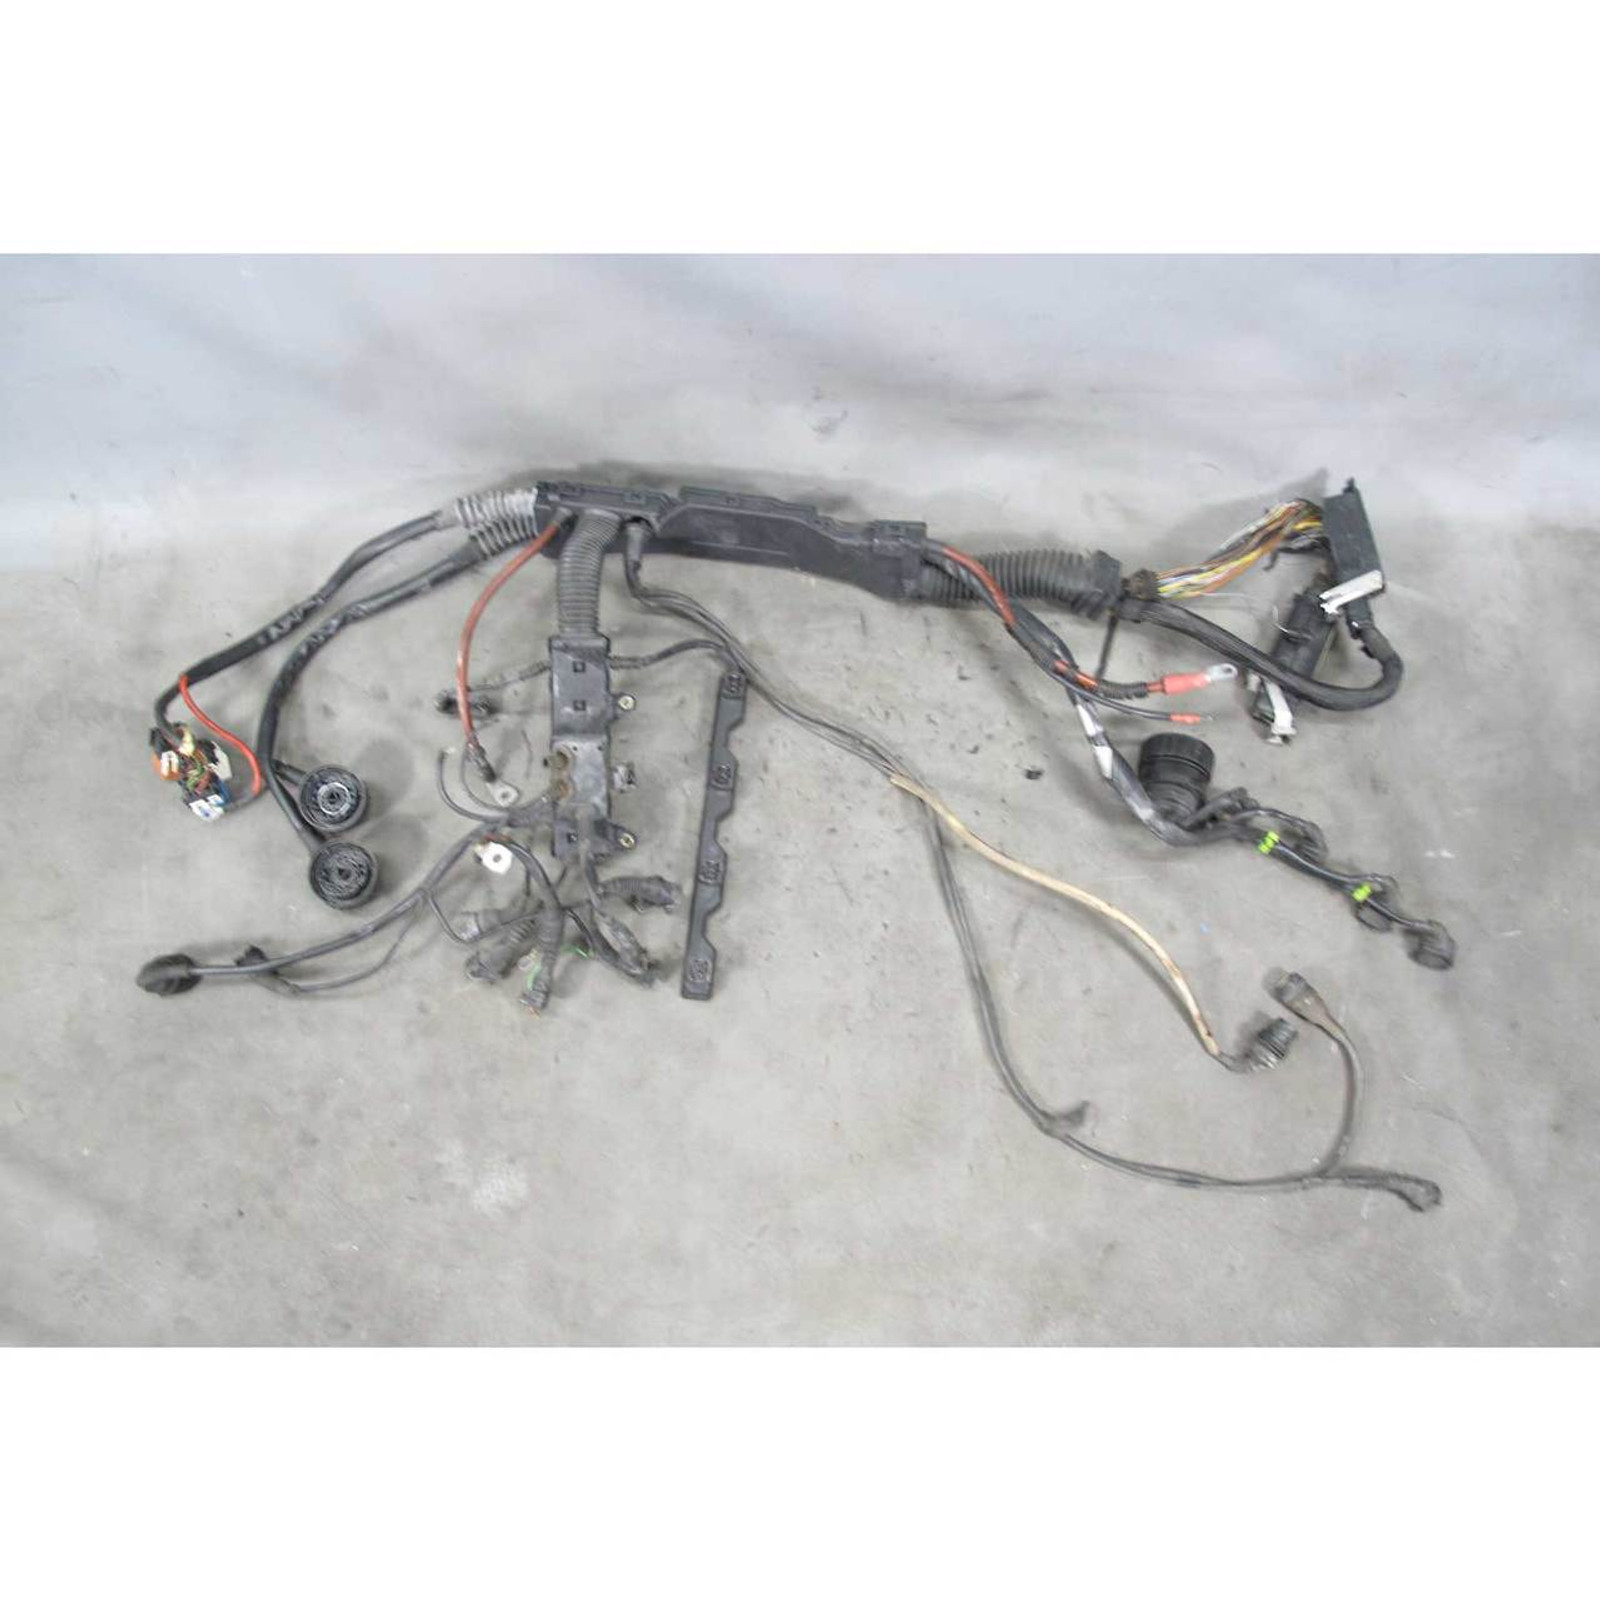 1992-1993 BMW E36 318i 318is M42 4-Cyl Engine Wiring Harness for Auto Trans  USED - Prussian MotorsPrussian Motors